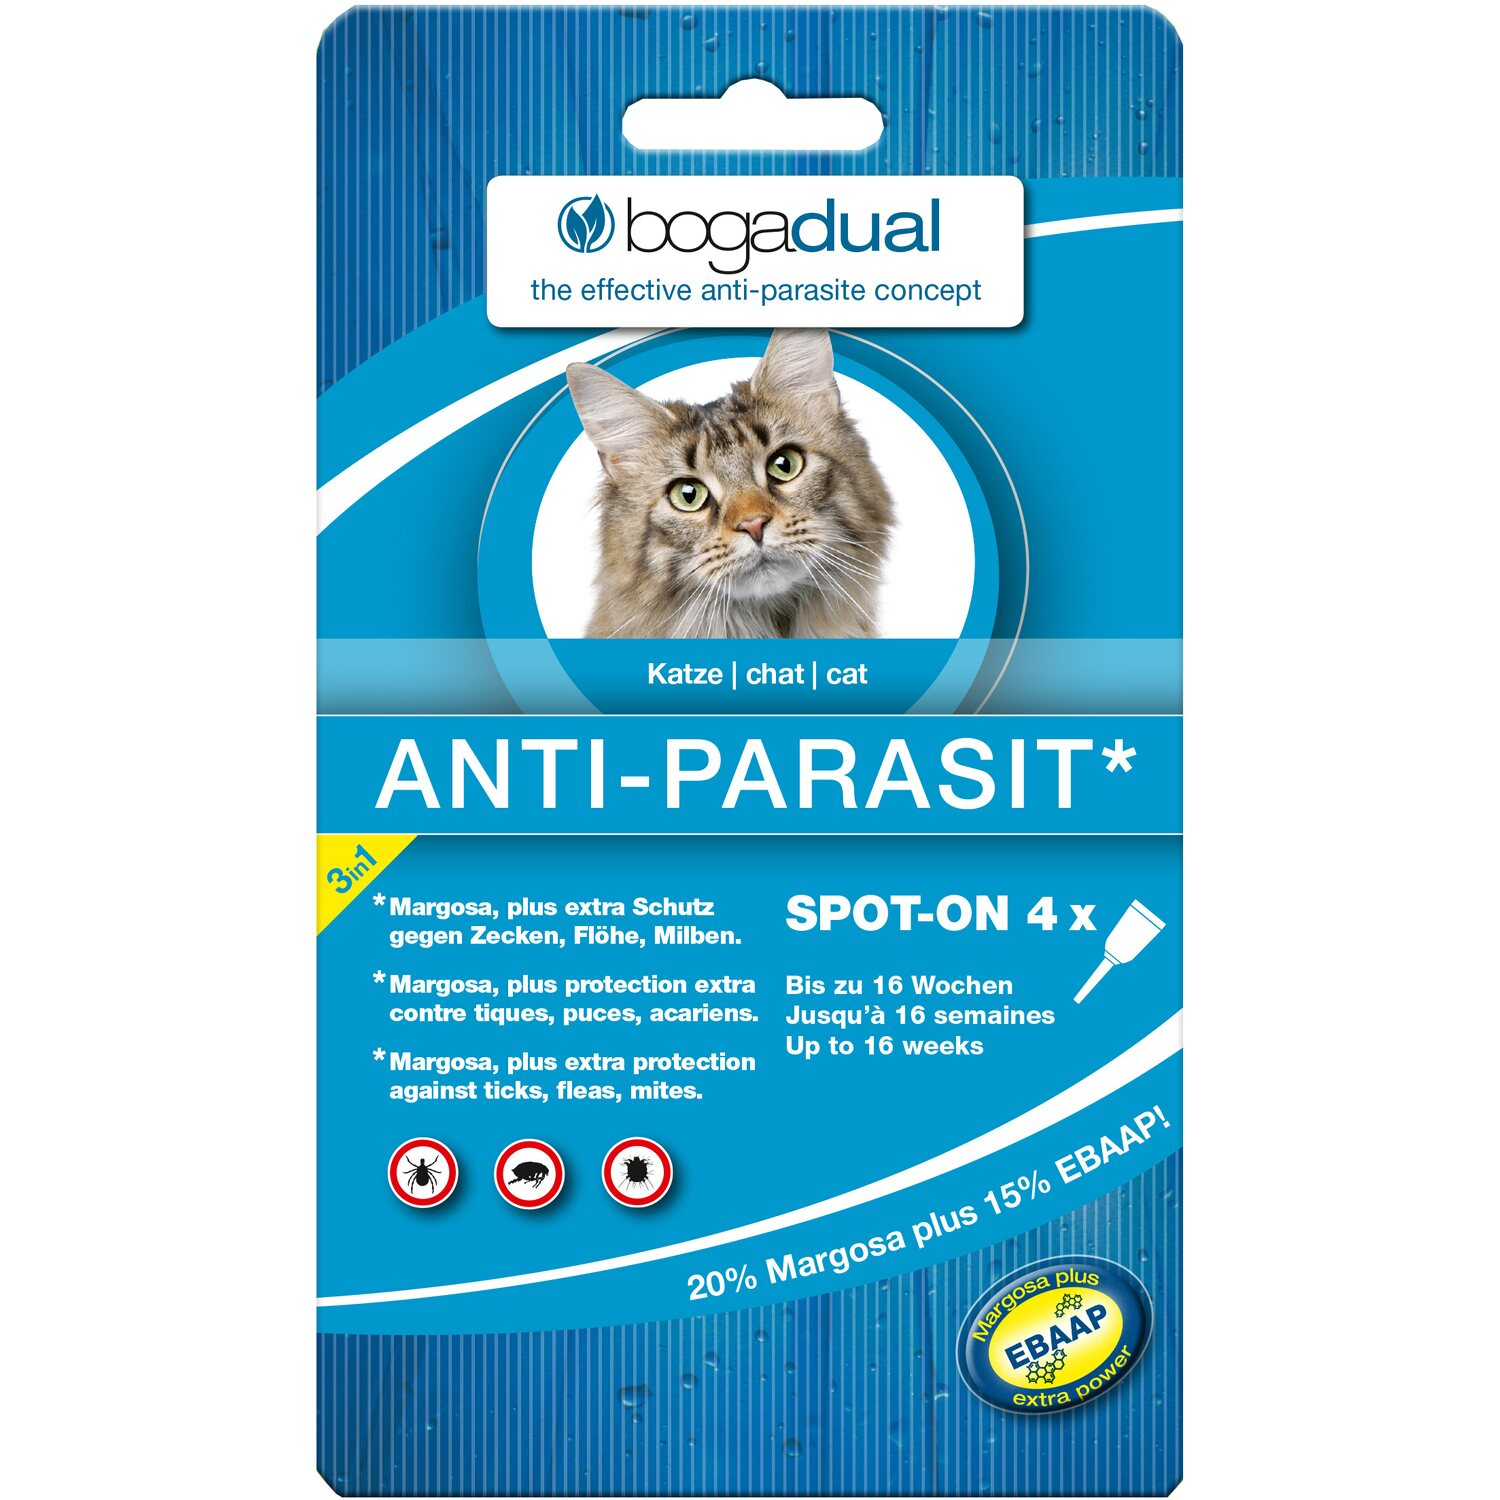 Bogadual® Anti-Parasit Spot-On Katze 4 x 0.75 ml